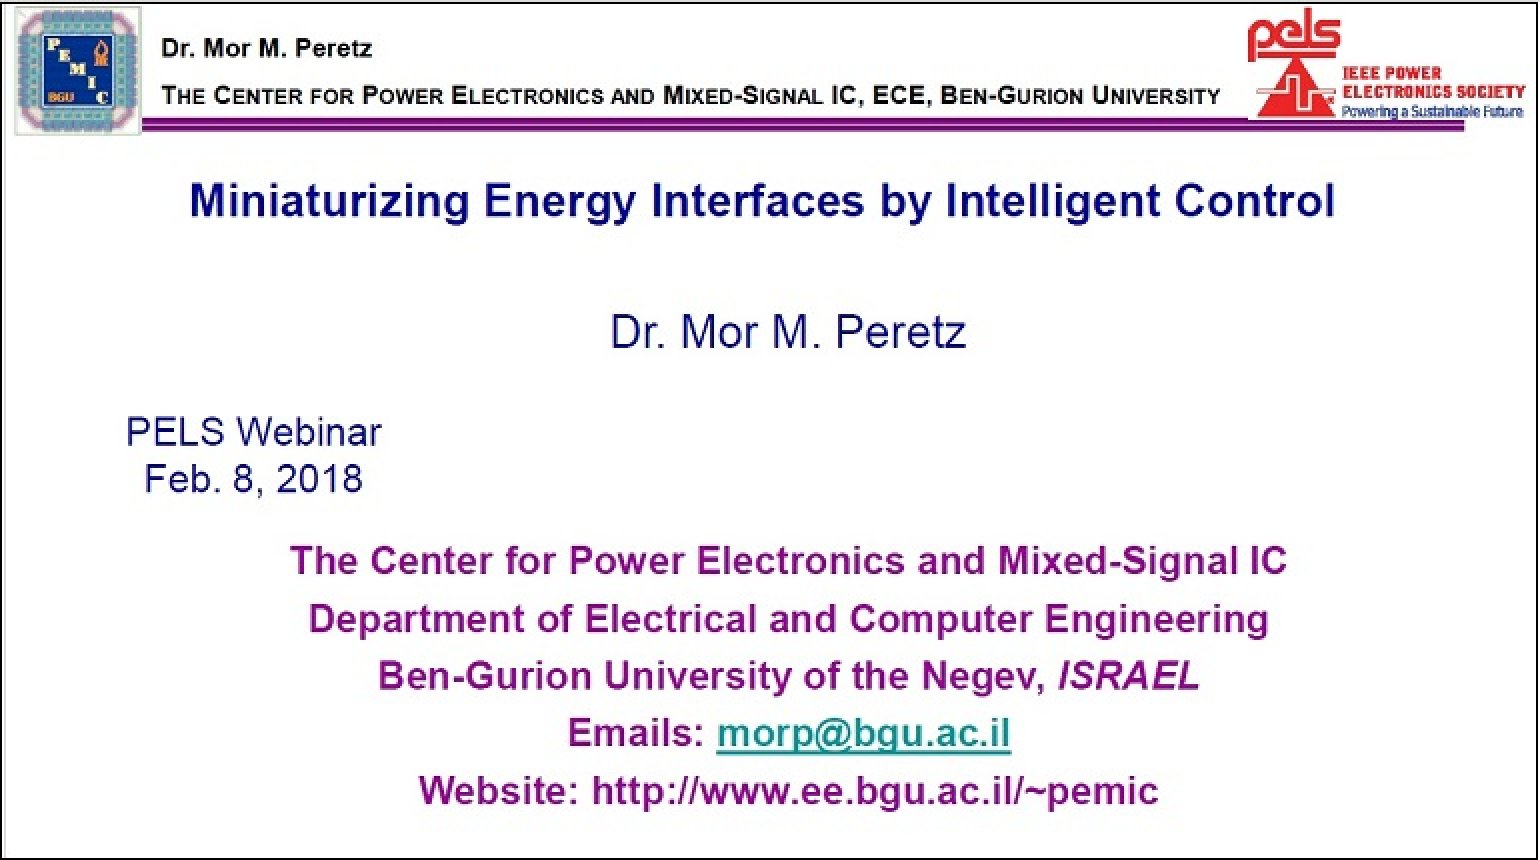 Miniaturizing Energy Interfaces by Intelligent Control Video